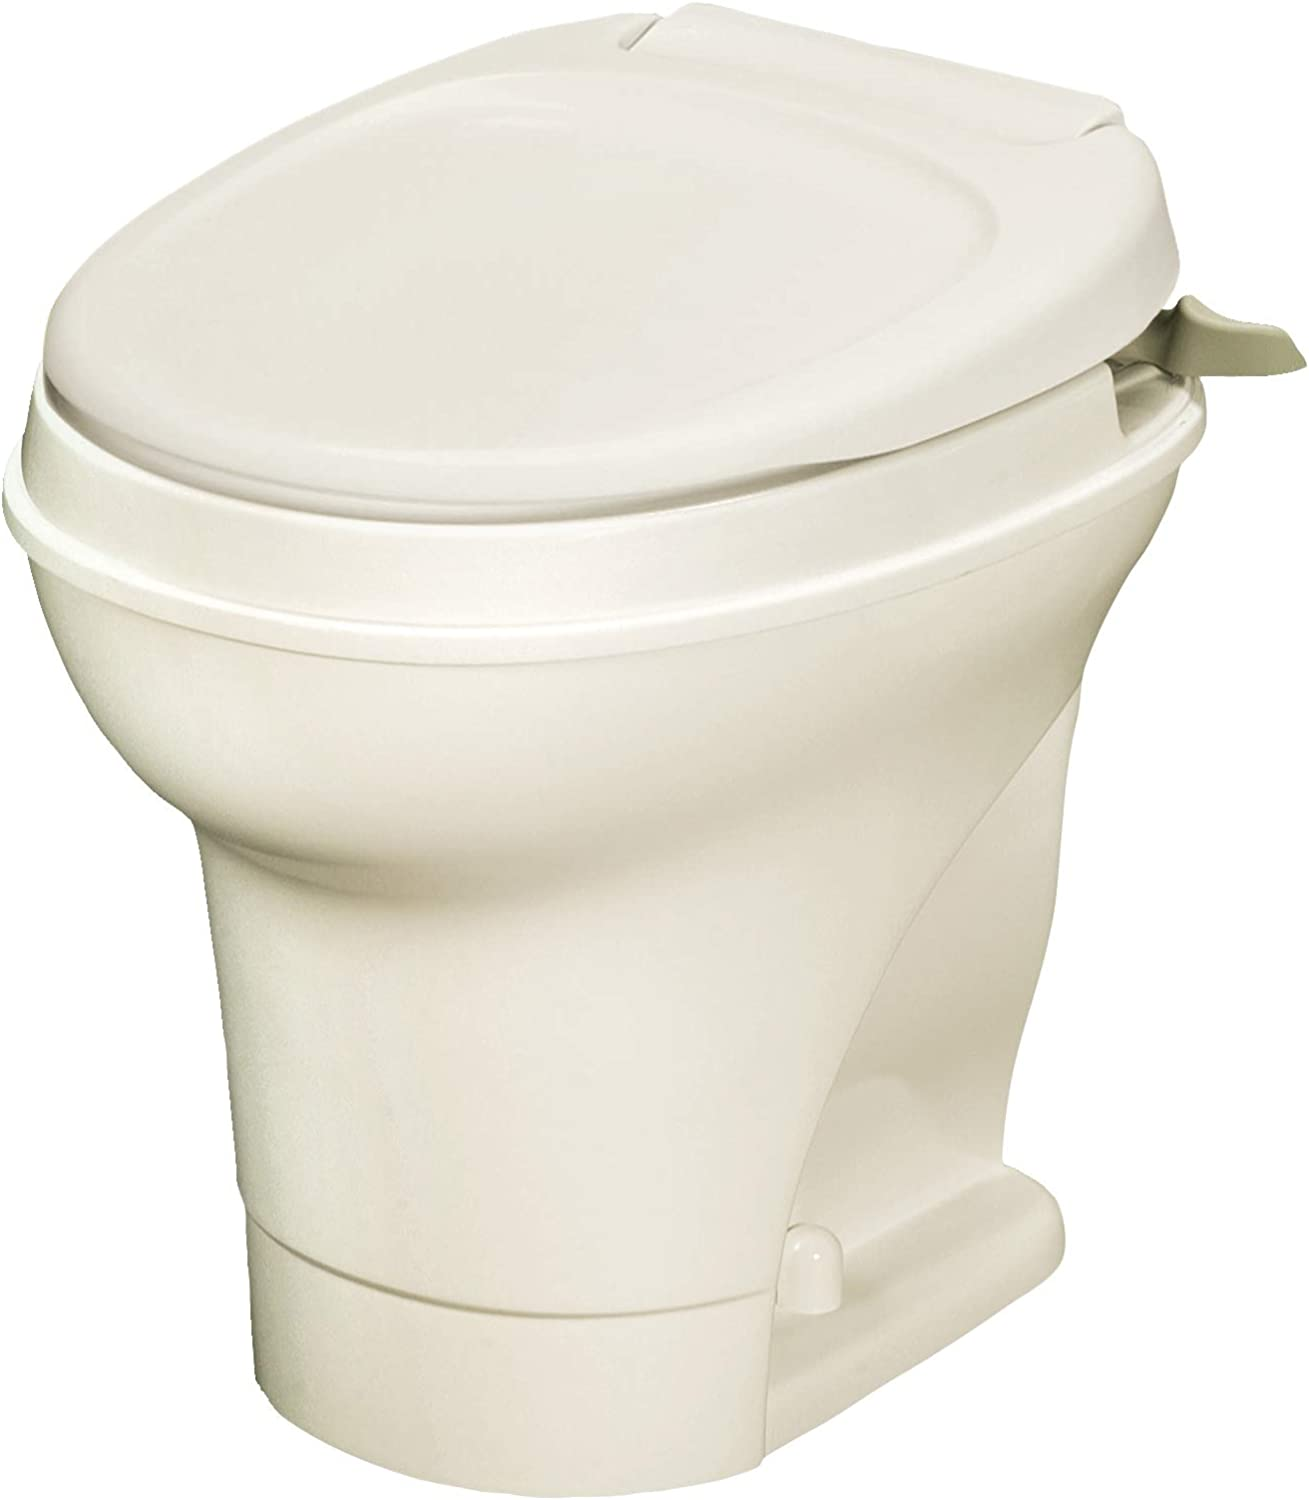 Best rv toilets: Thetford Parchment Aqua-Magic V RV Toilet 31668